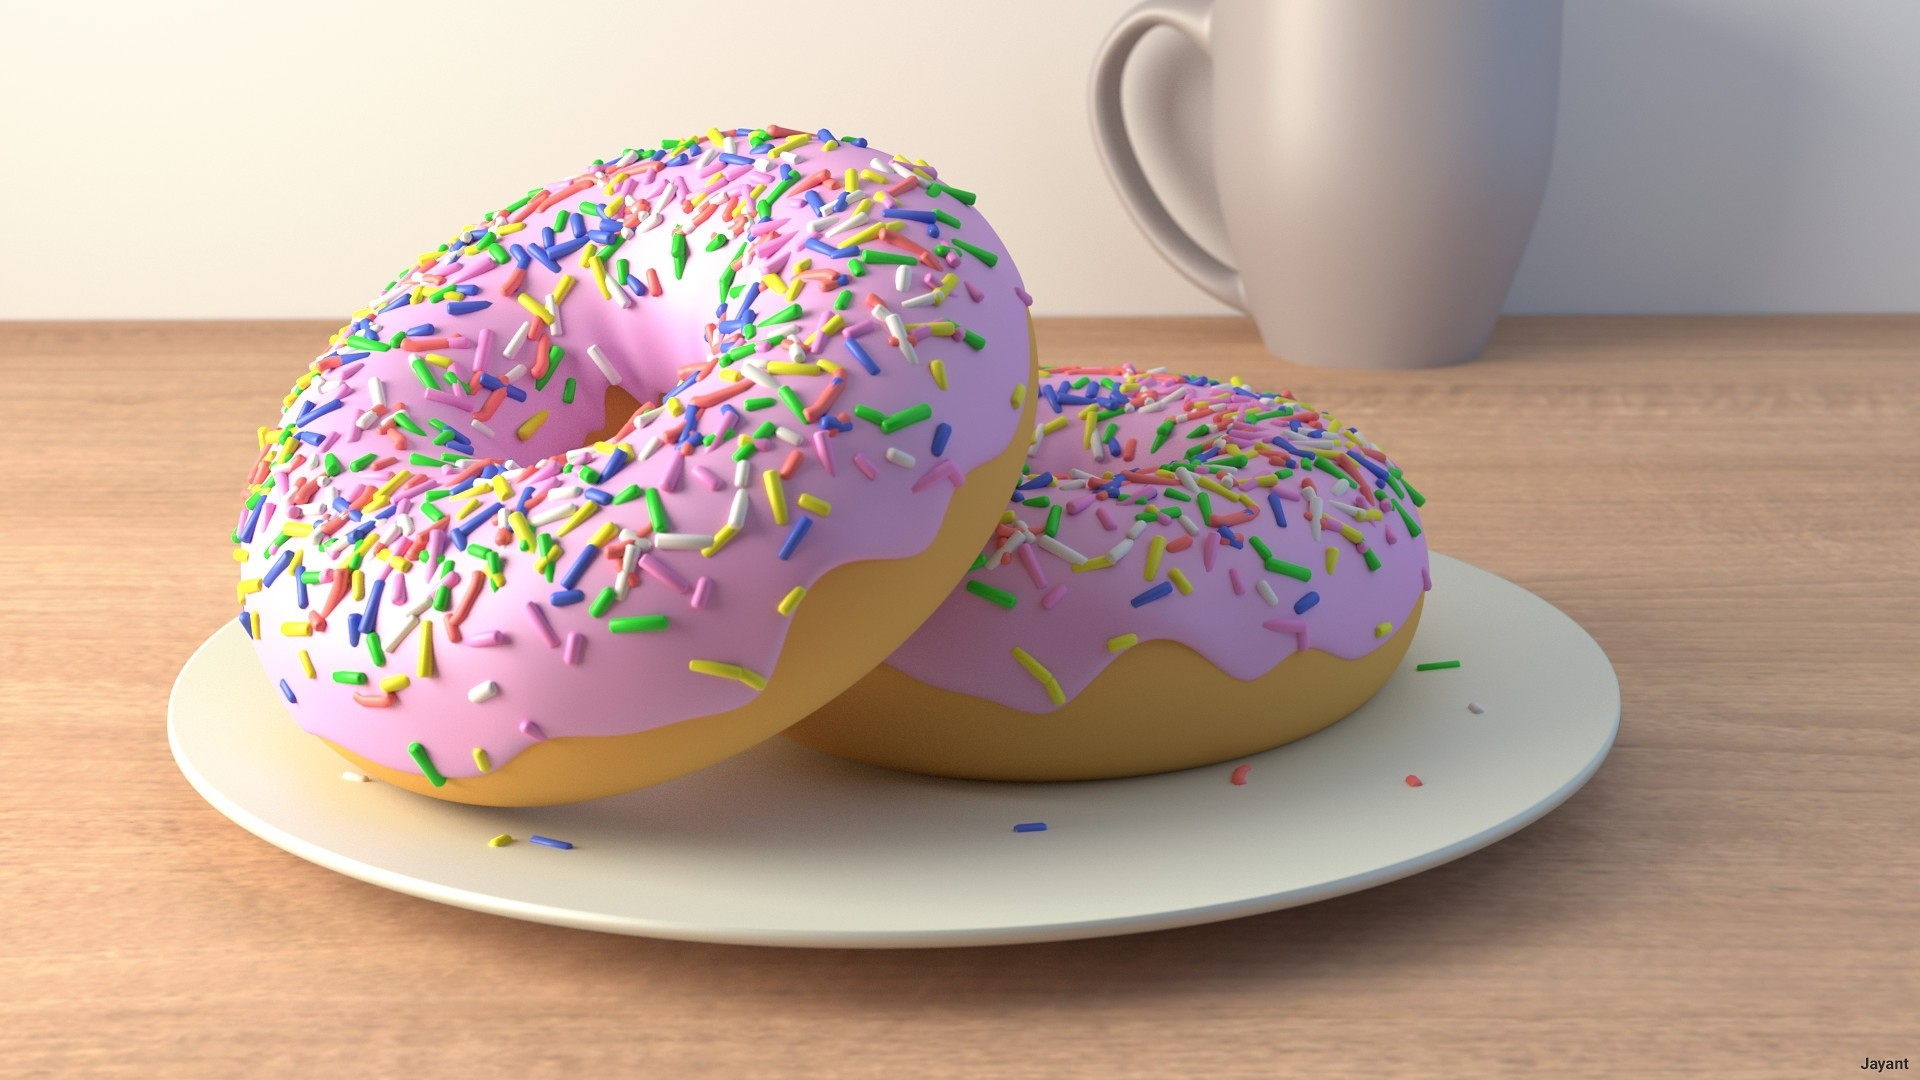 Donut Wallpaper Picture hd